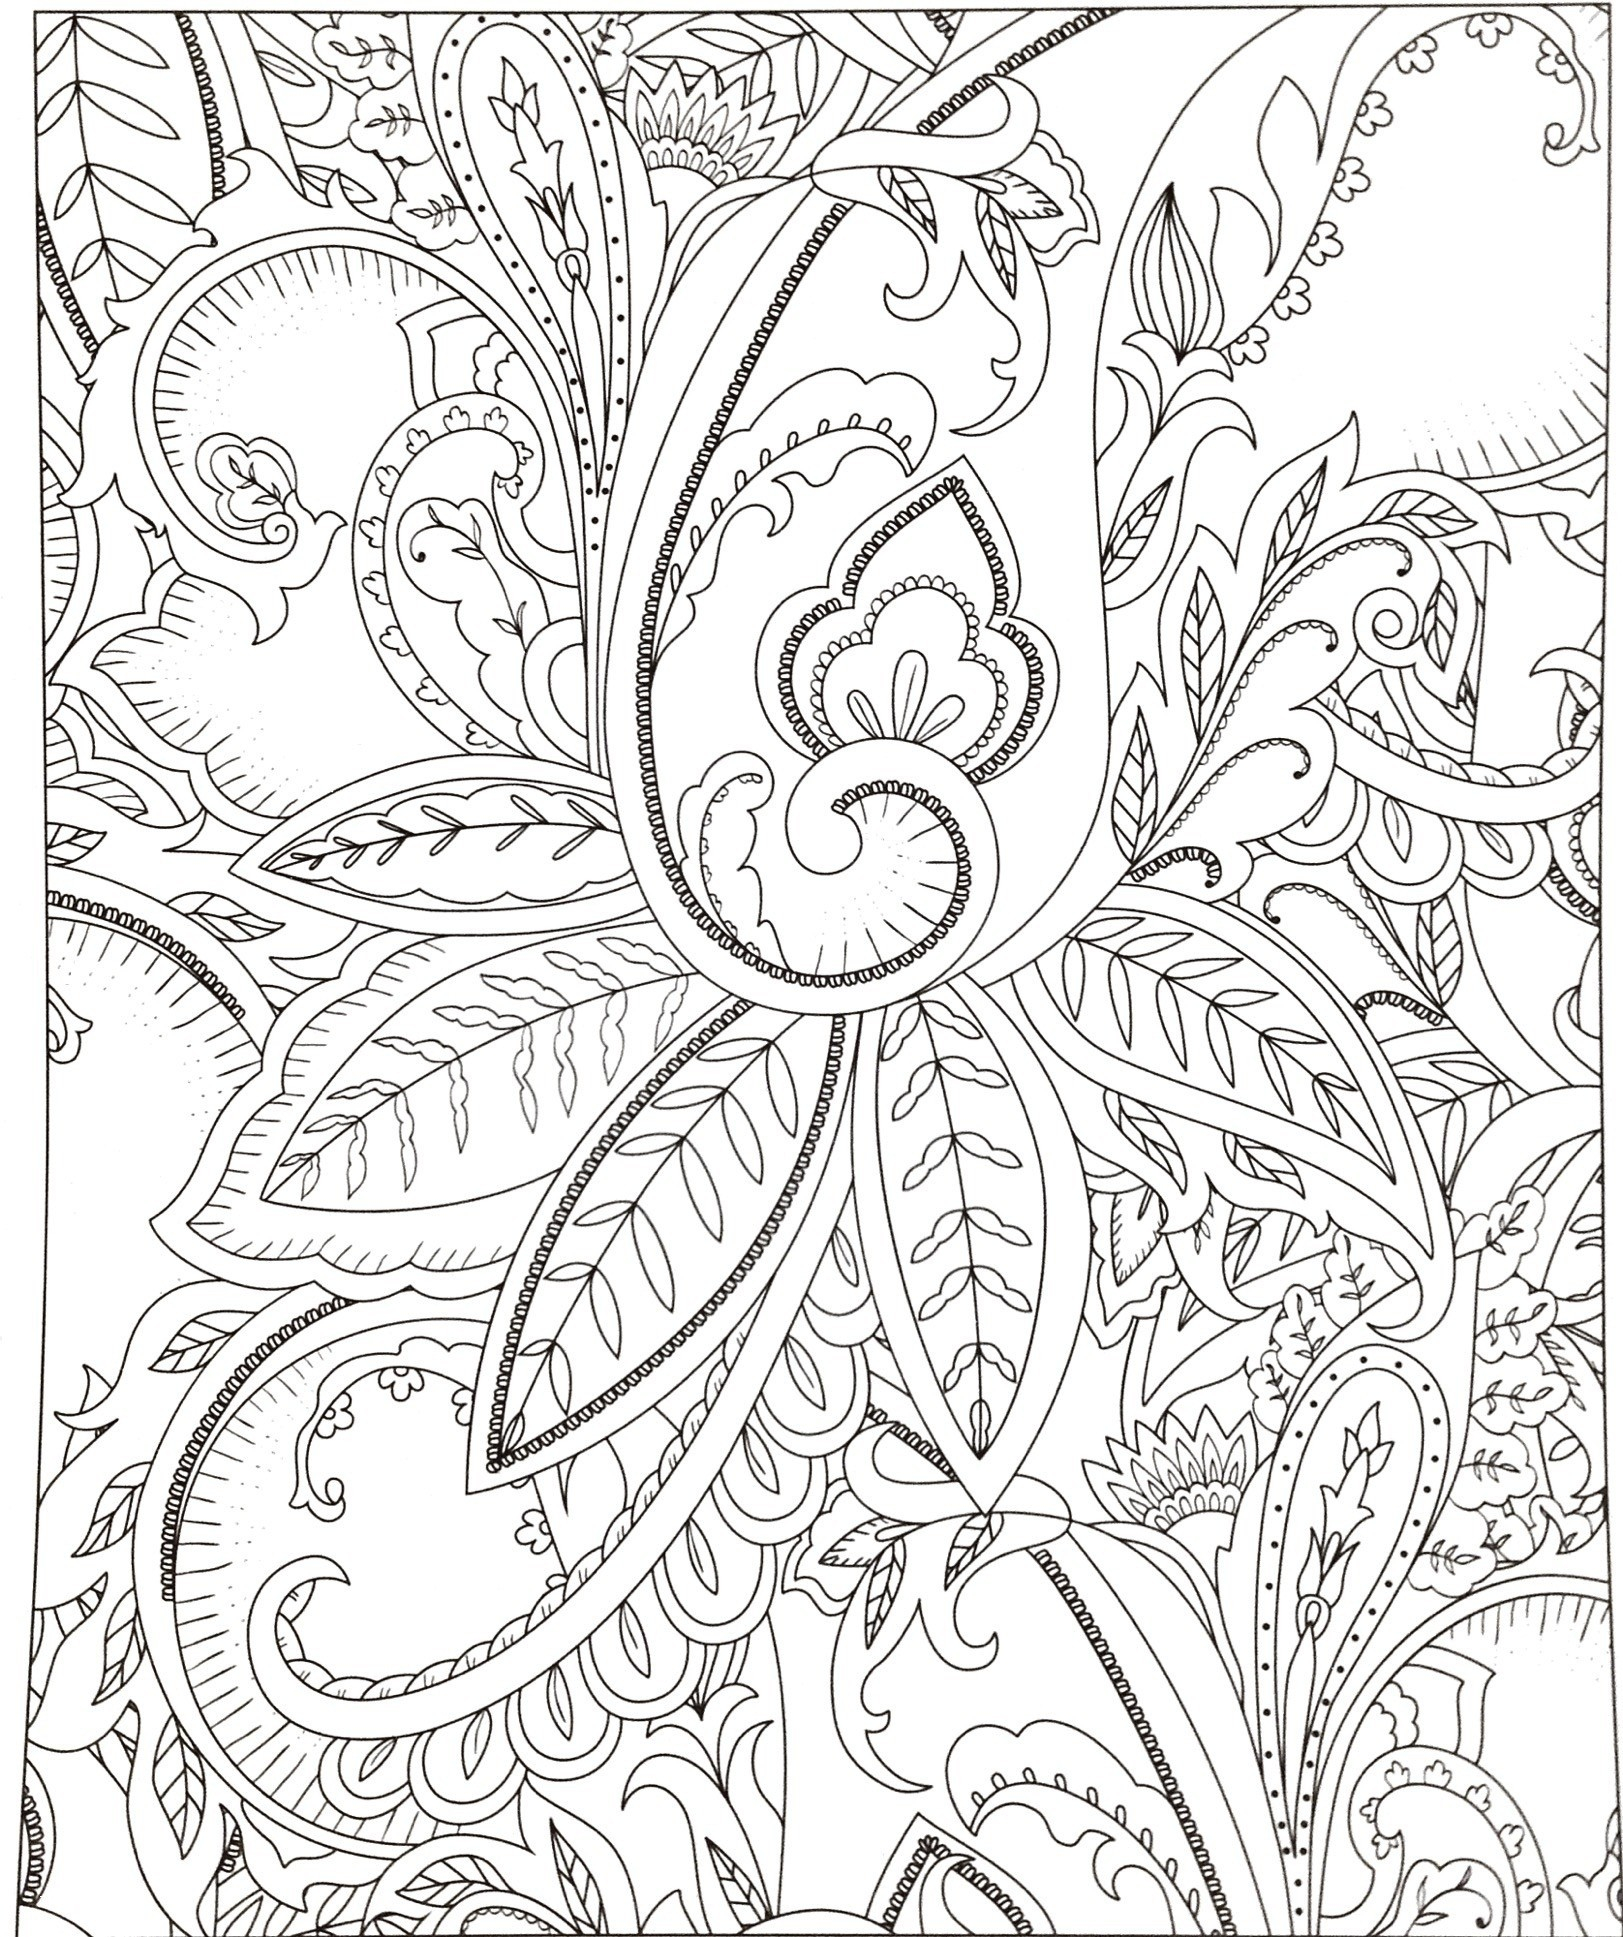 Word Search Coloring Pages To Print Coloring Pages Remarkable Thanksgivingg Pages Word Search Free